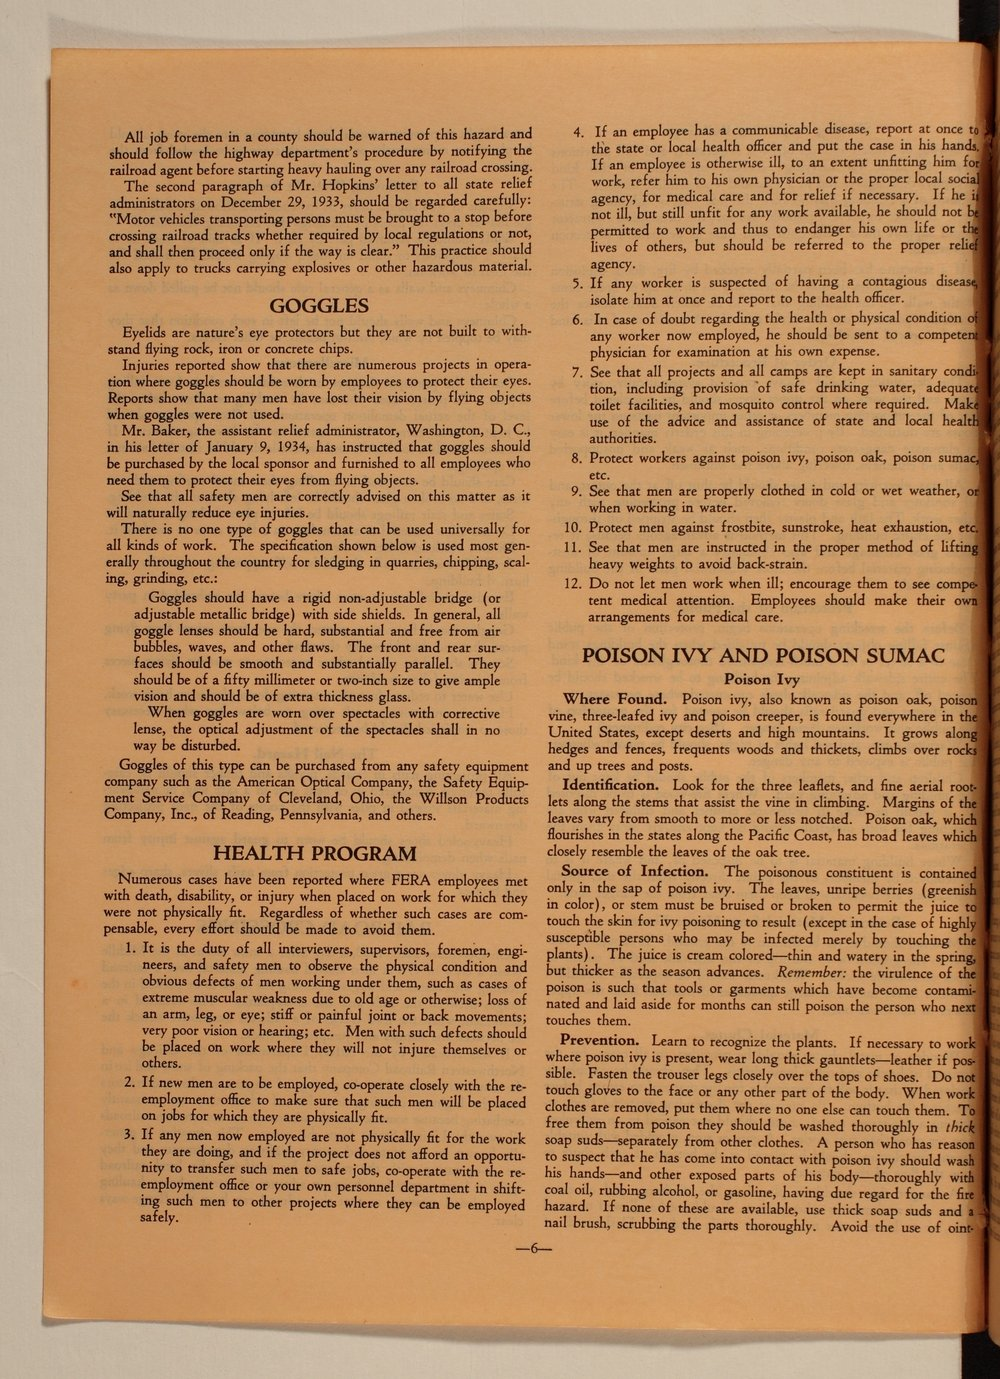 Kansas Emergency Relief Committee, bulletin 105 - 6